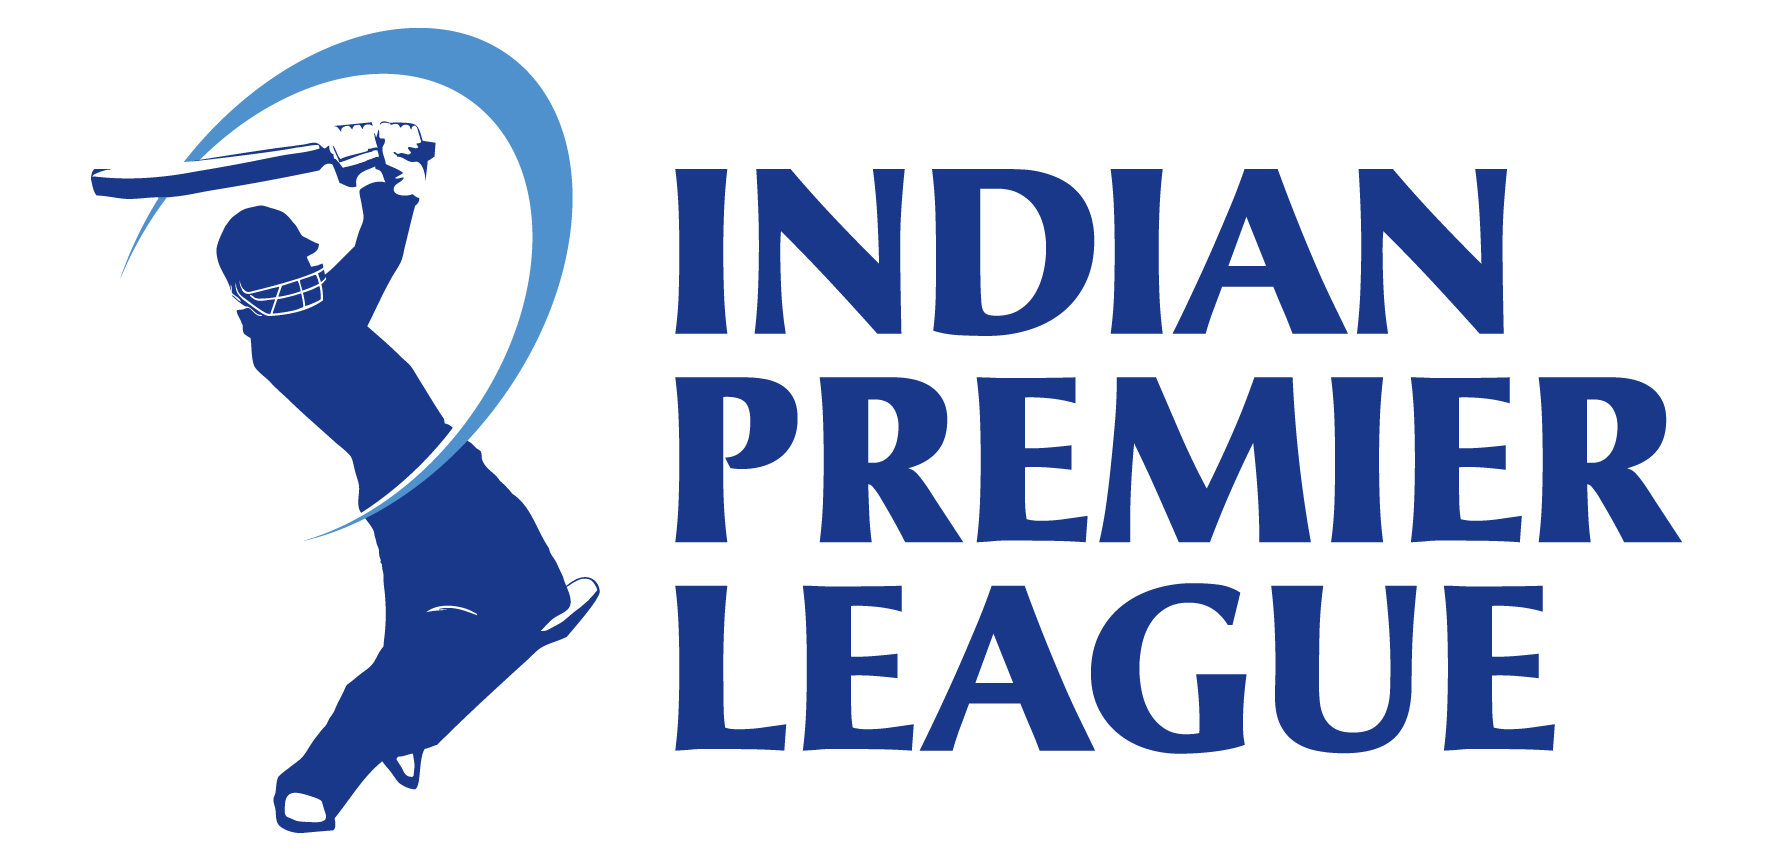 Indian Premier League Ipl Logo Bcci Board Of Control For Cricket In India Clt20 Cricket I Indian Indian Premier Indian Pre In 2020 Premier League Ipl League